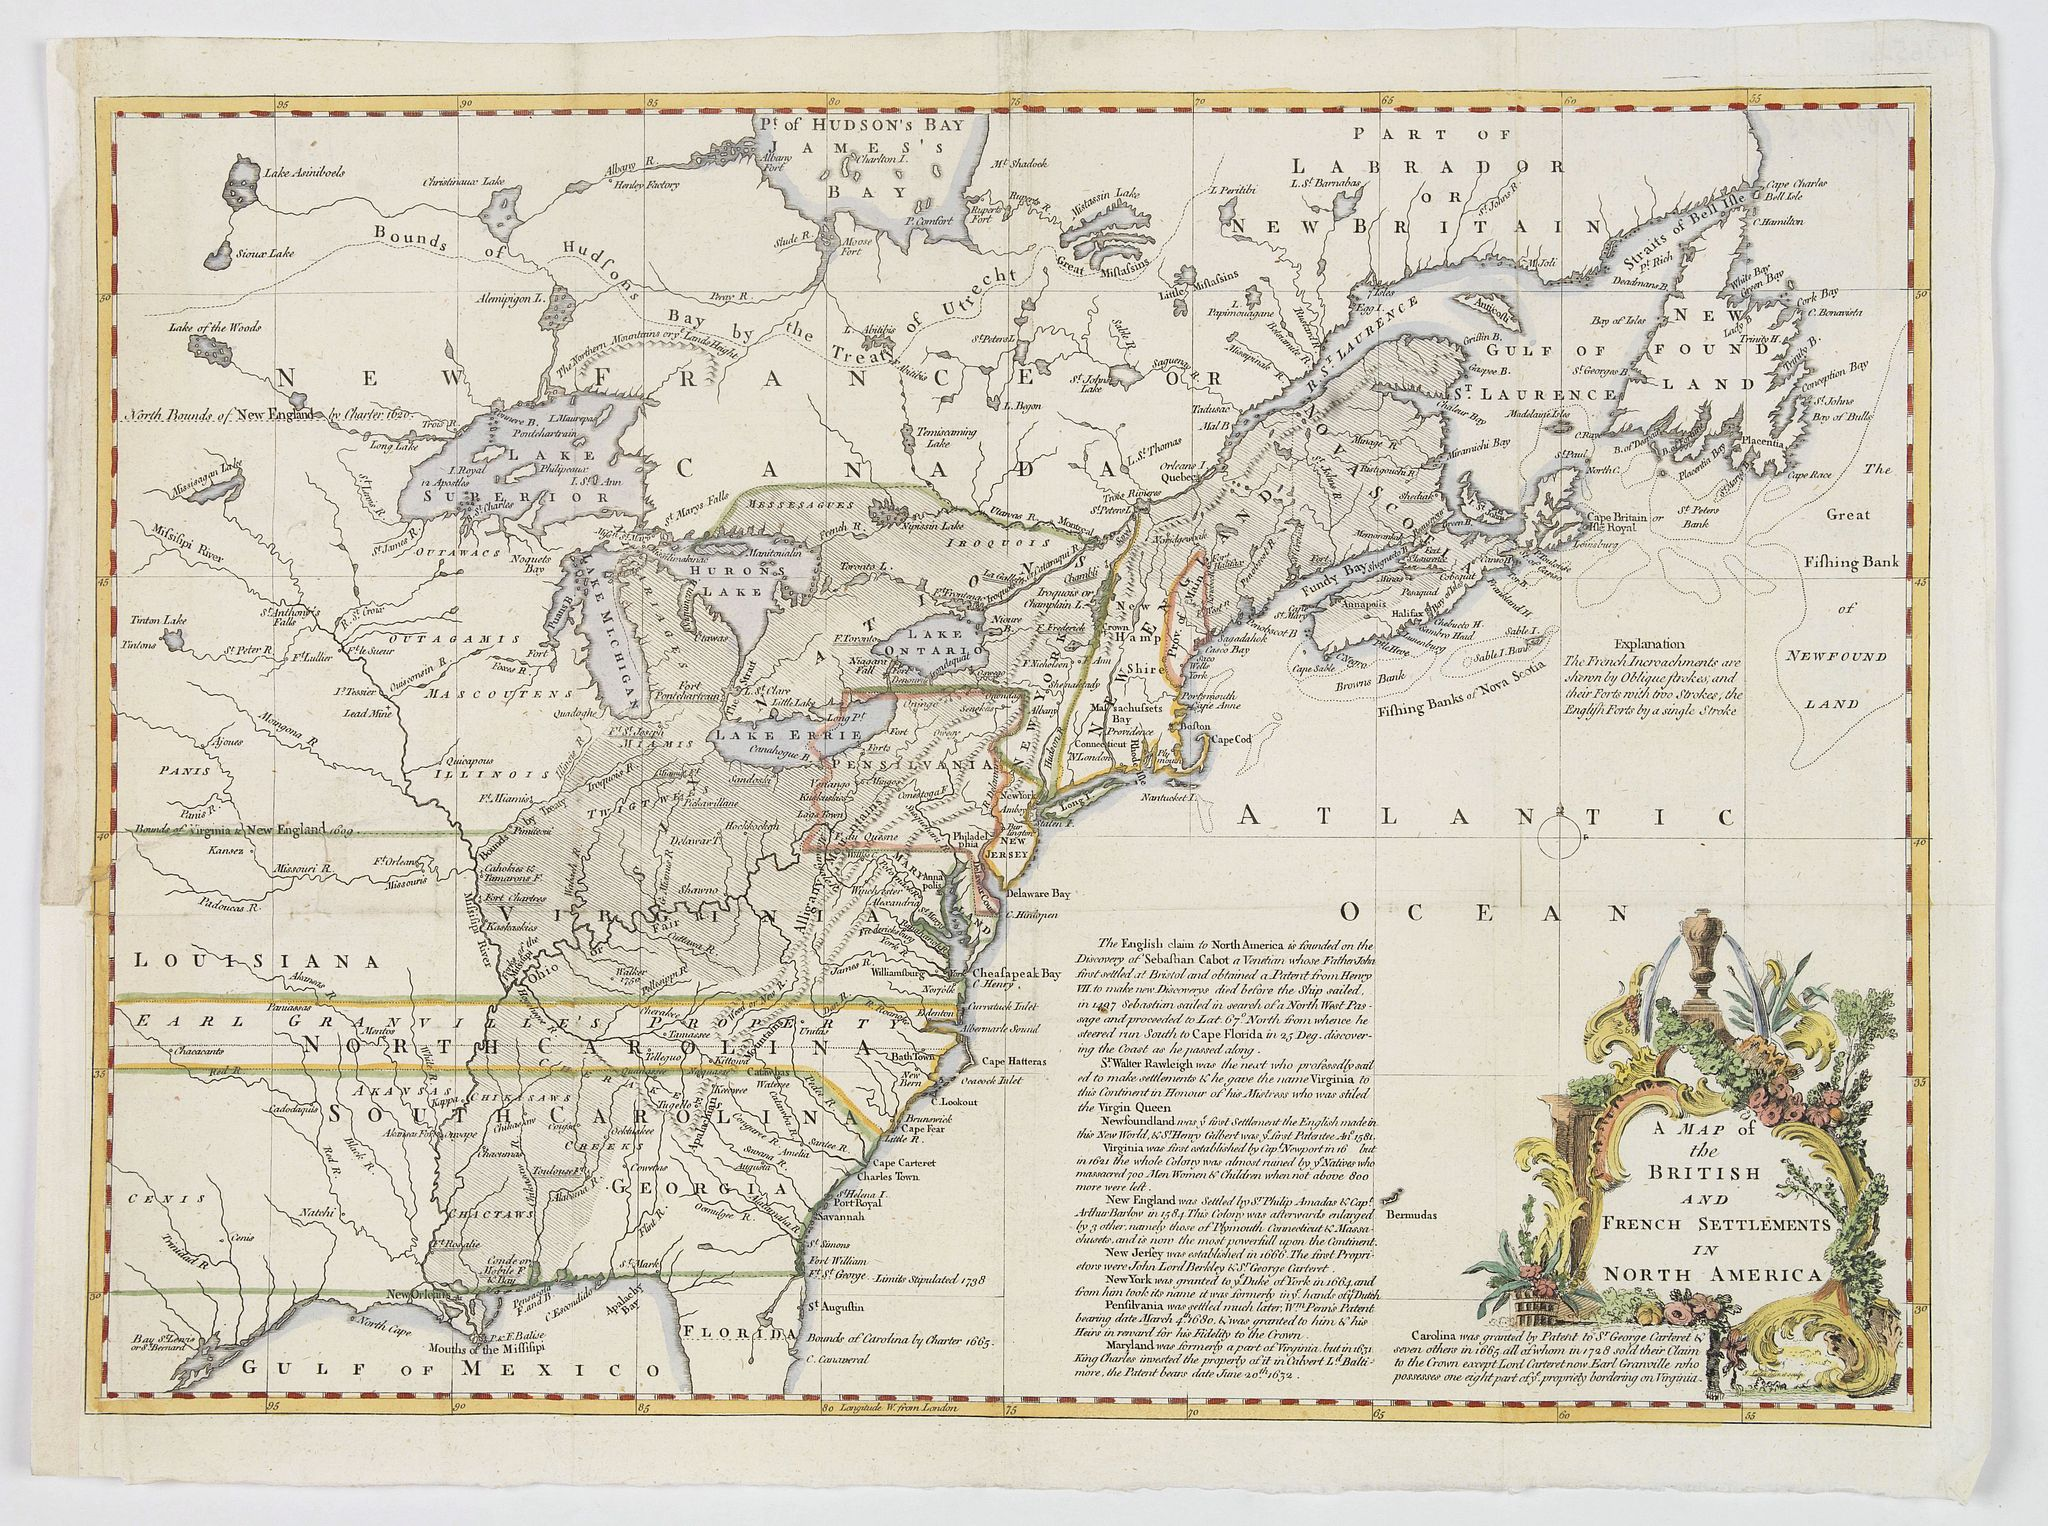 THE GENTLEMANS MAGAZINE. -  A Map of the British and French Settlements in North America.